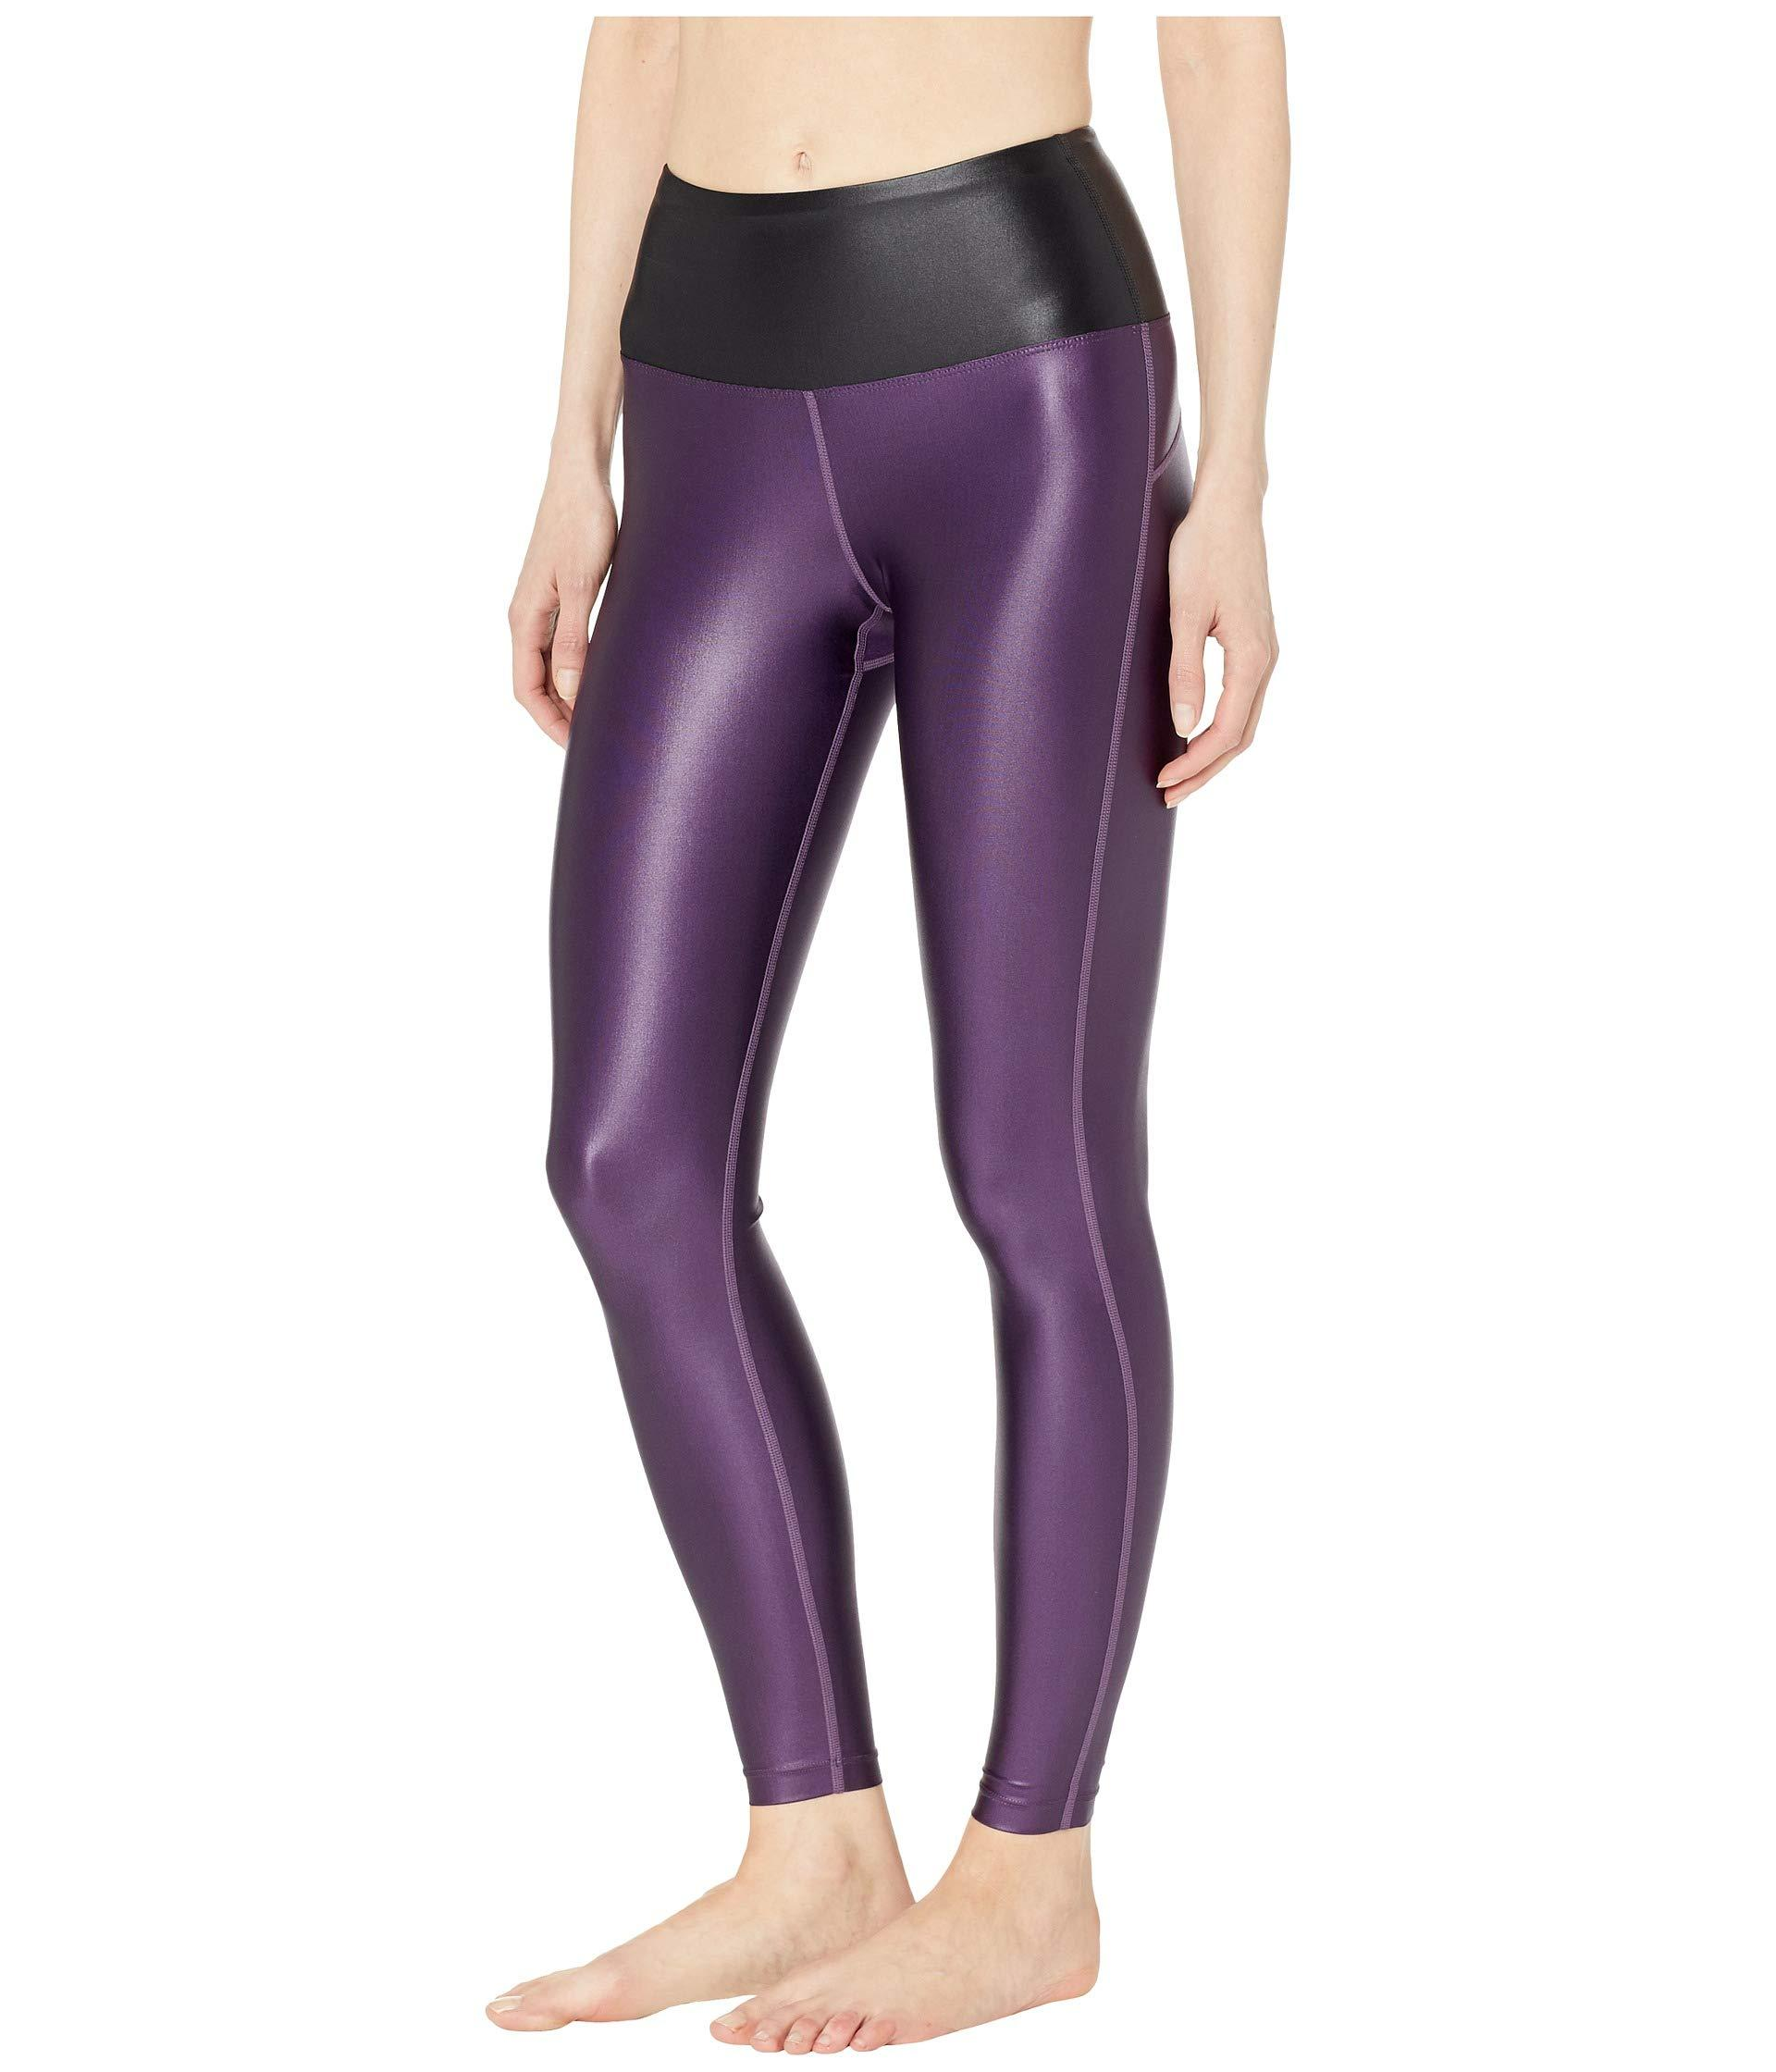 b35b17f3f749 Lyst - Asics Luxe Traveler High-waisted Tights (night Shade performance  Black) Women s Casual Pants in Purple